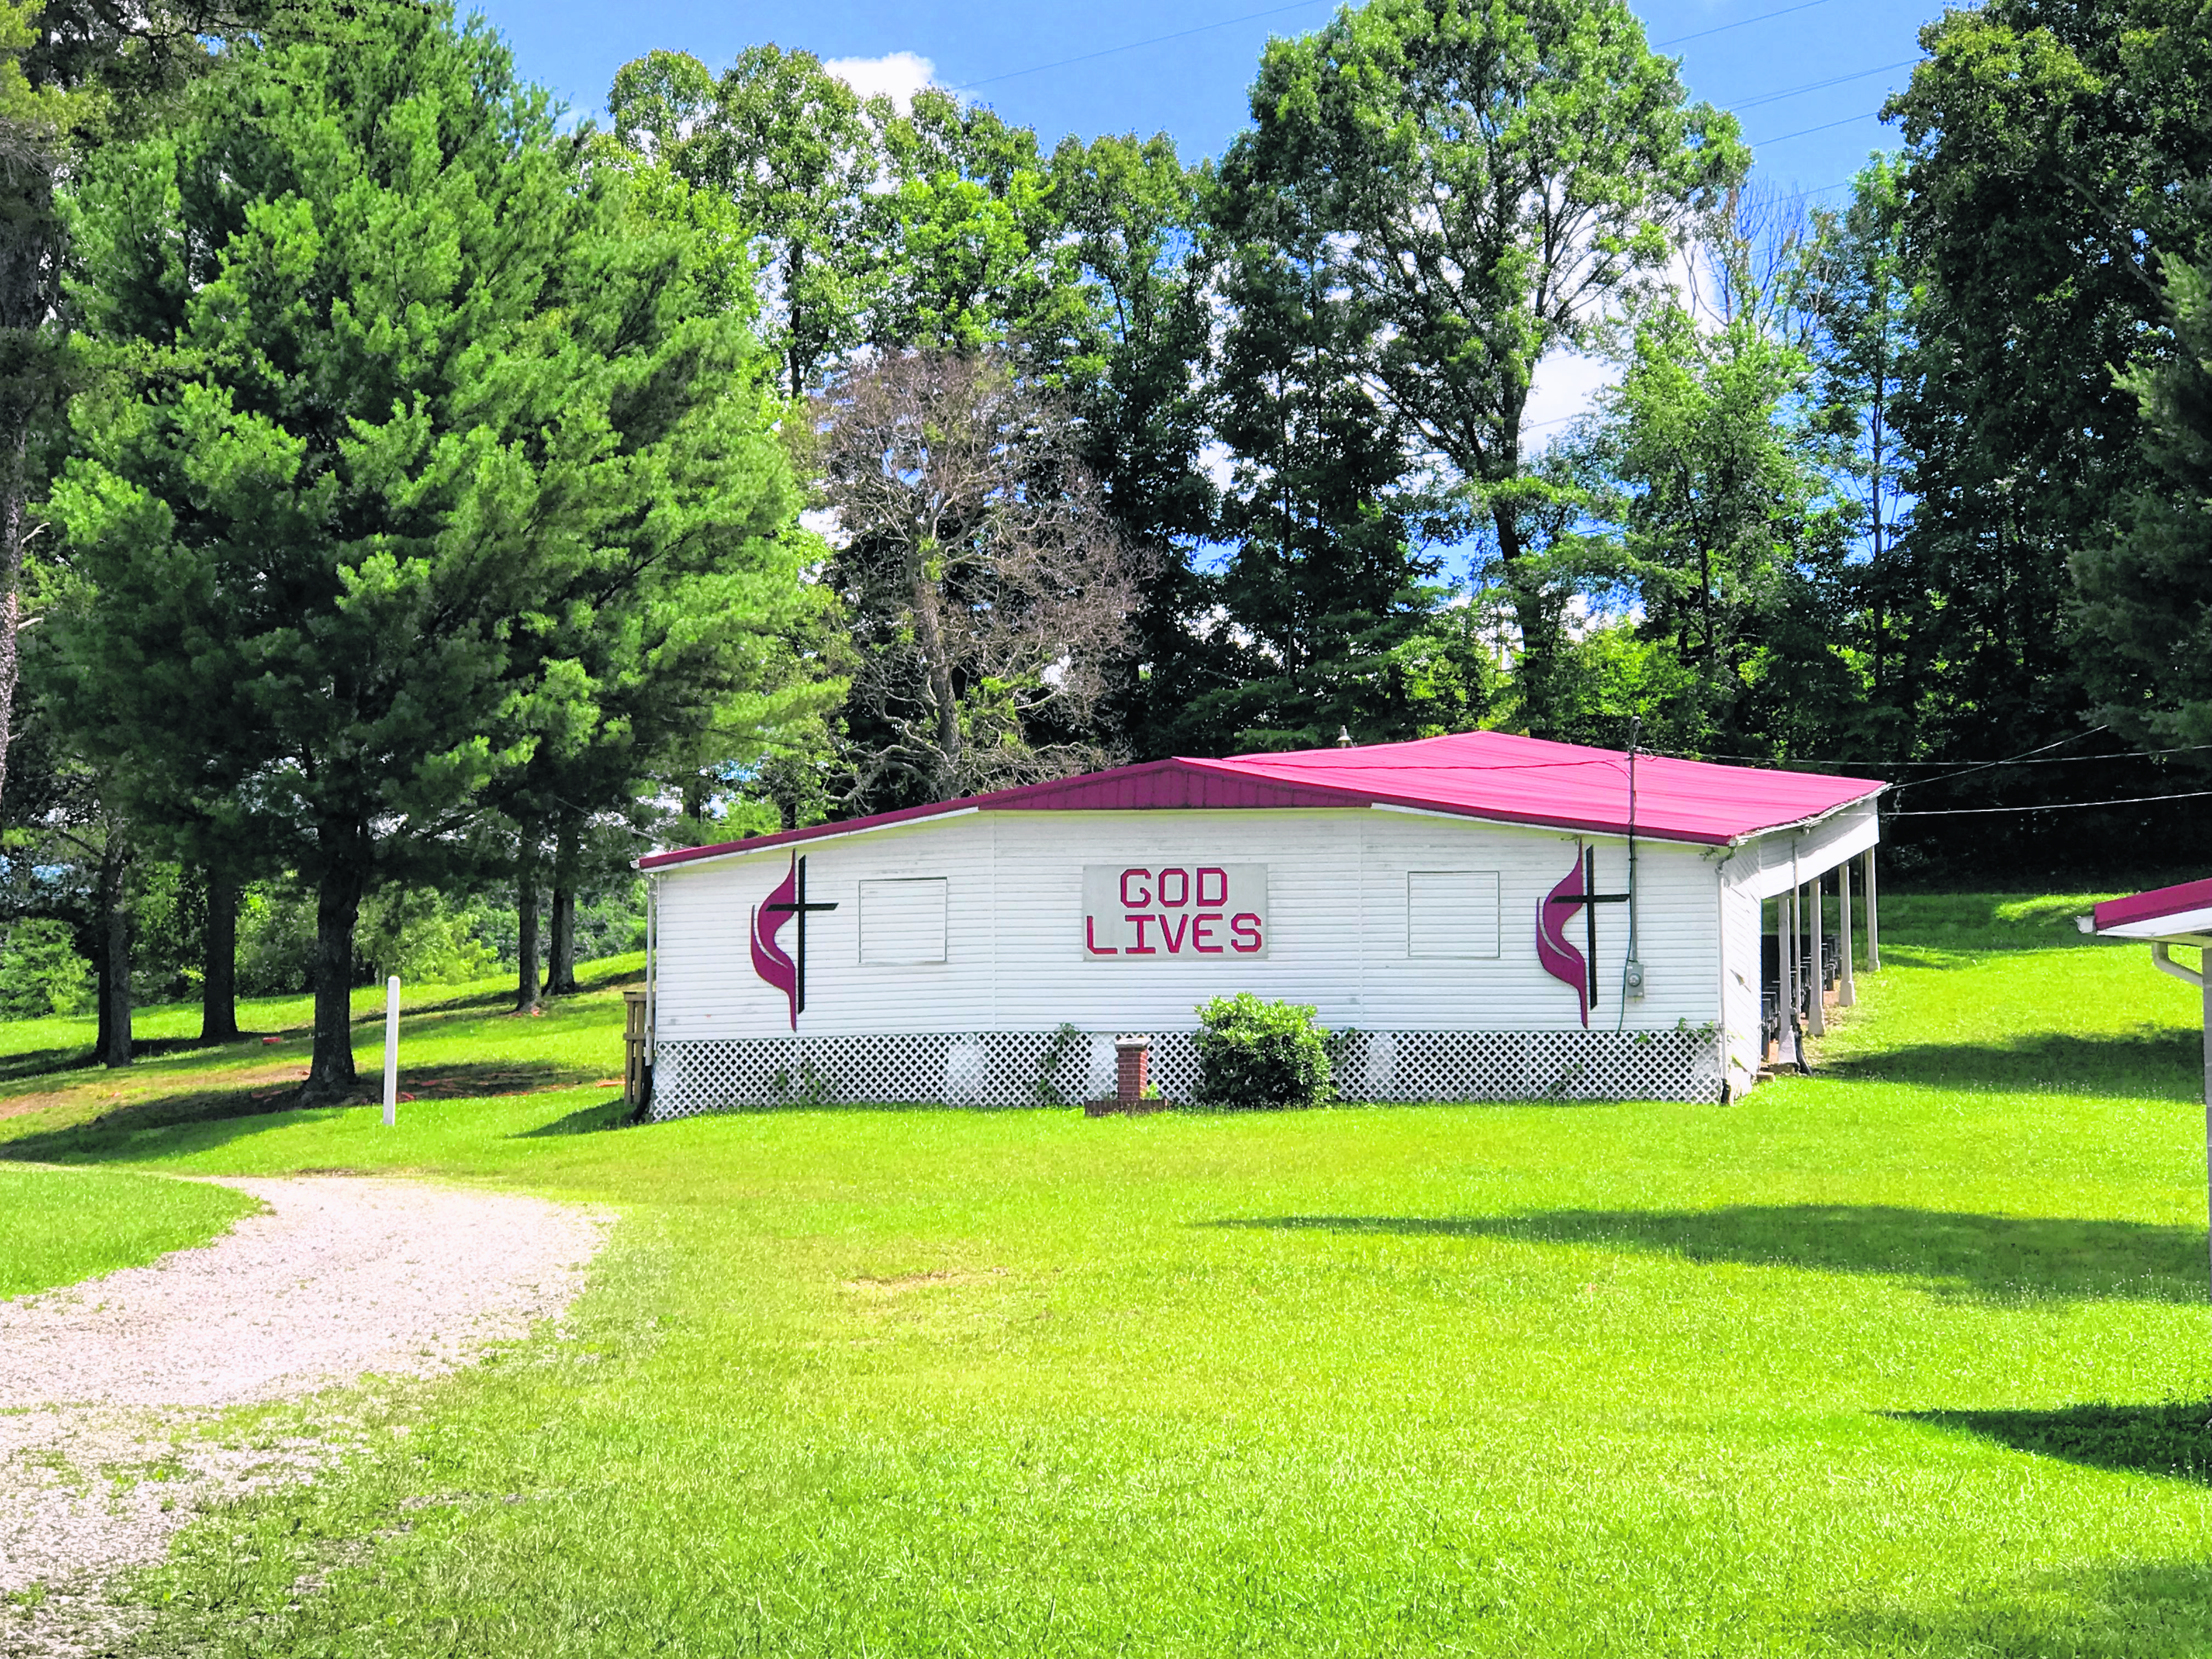 """Union Camp Ground in Letart, pictured, will be the site of the annual """"Camp Meeting,"""" set for July 8-15 at 7 p.m. nightly. The eight-day meeting has been ongoing for over 95 years."""